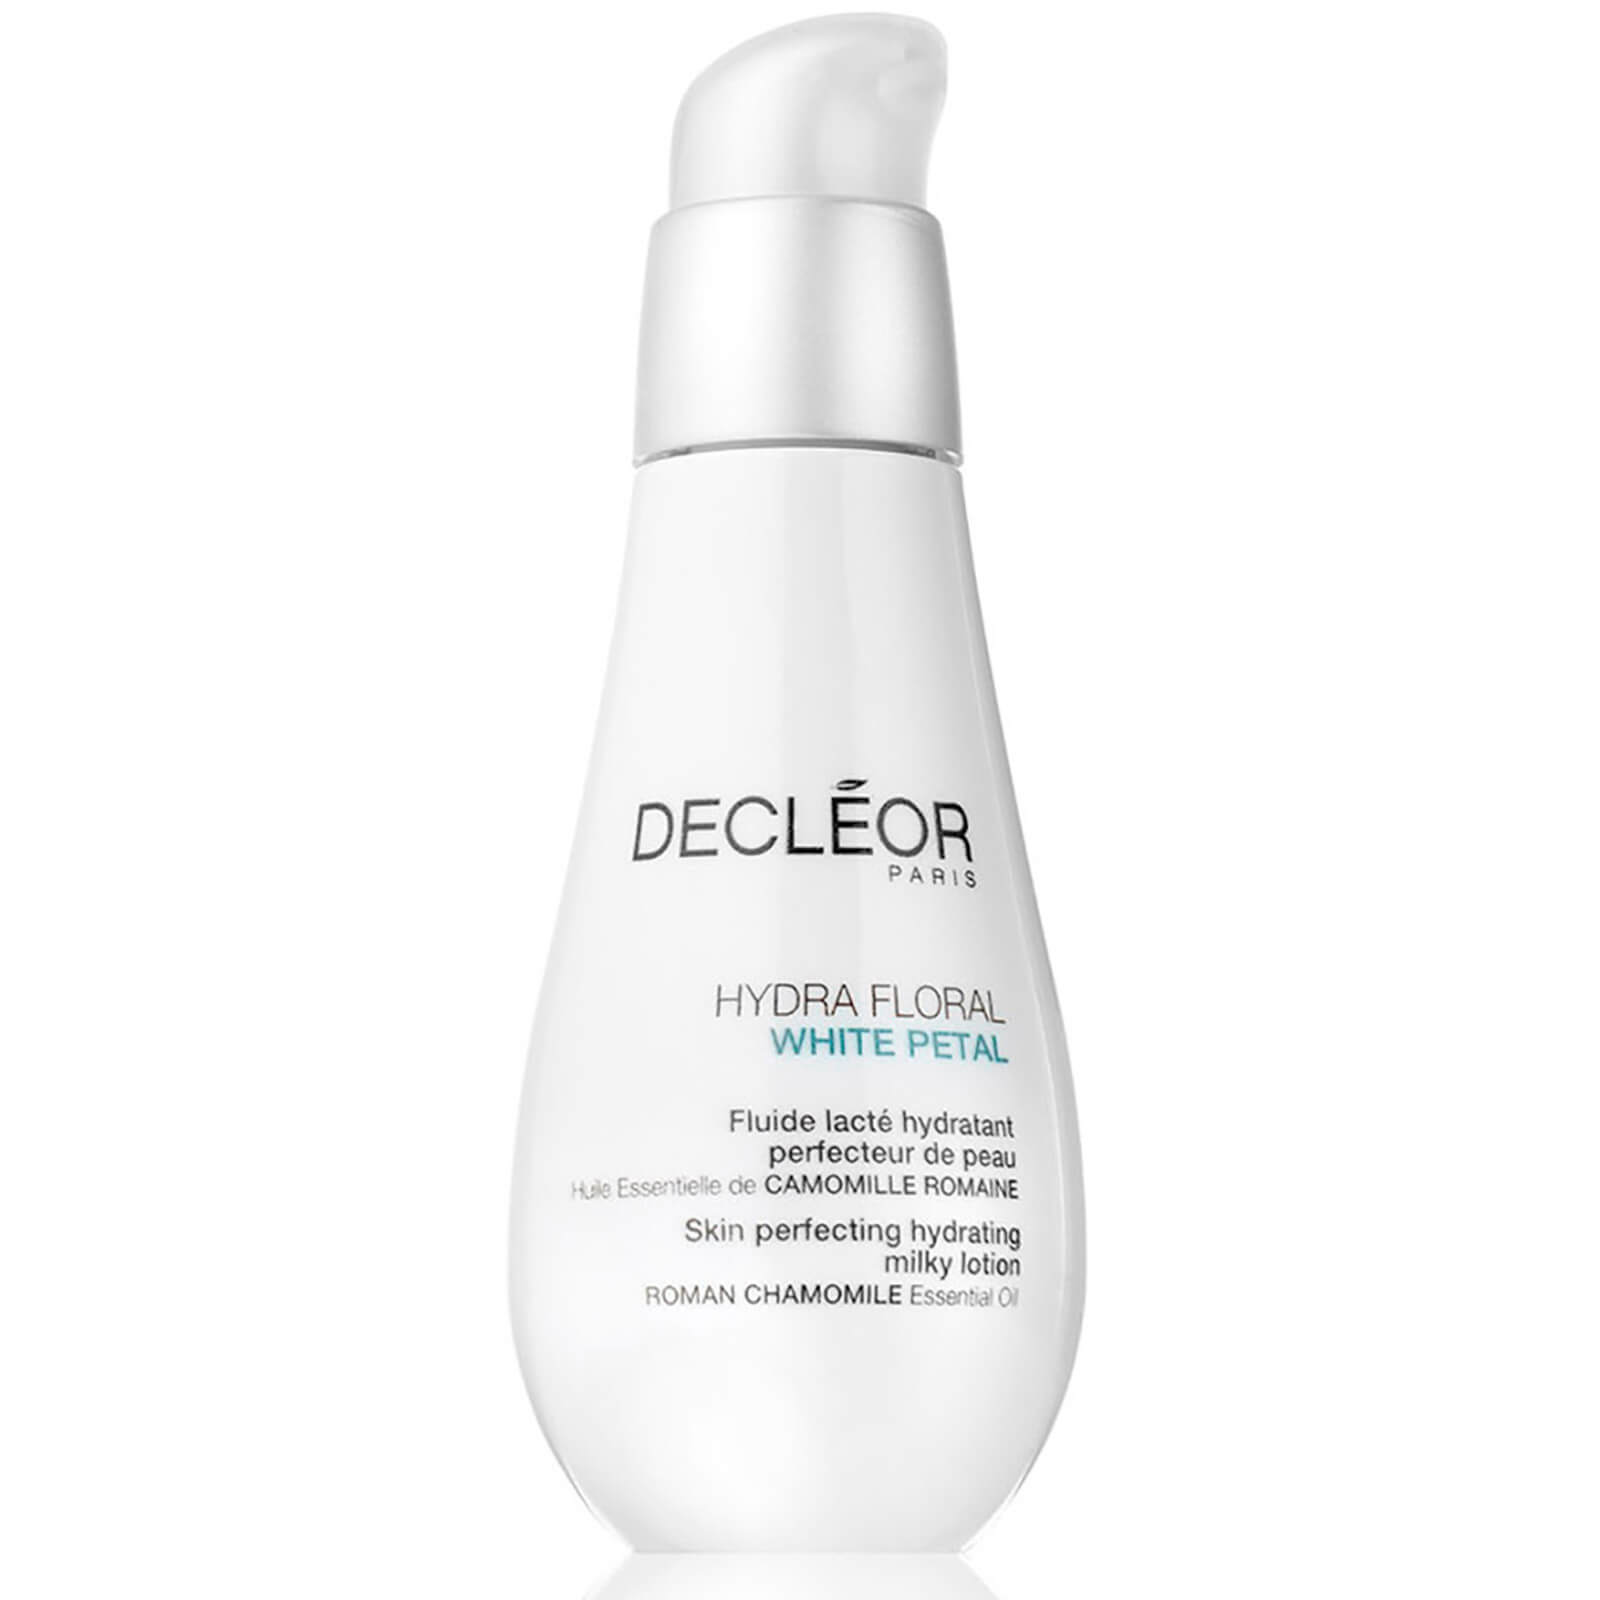 decleor aroma white c hydra brightening lotion in the basket